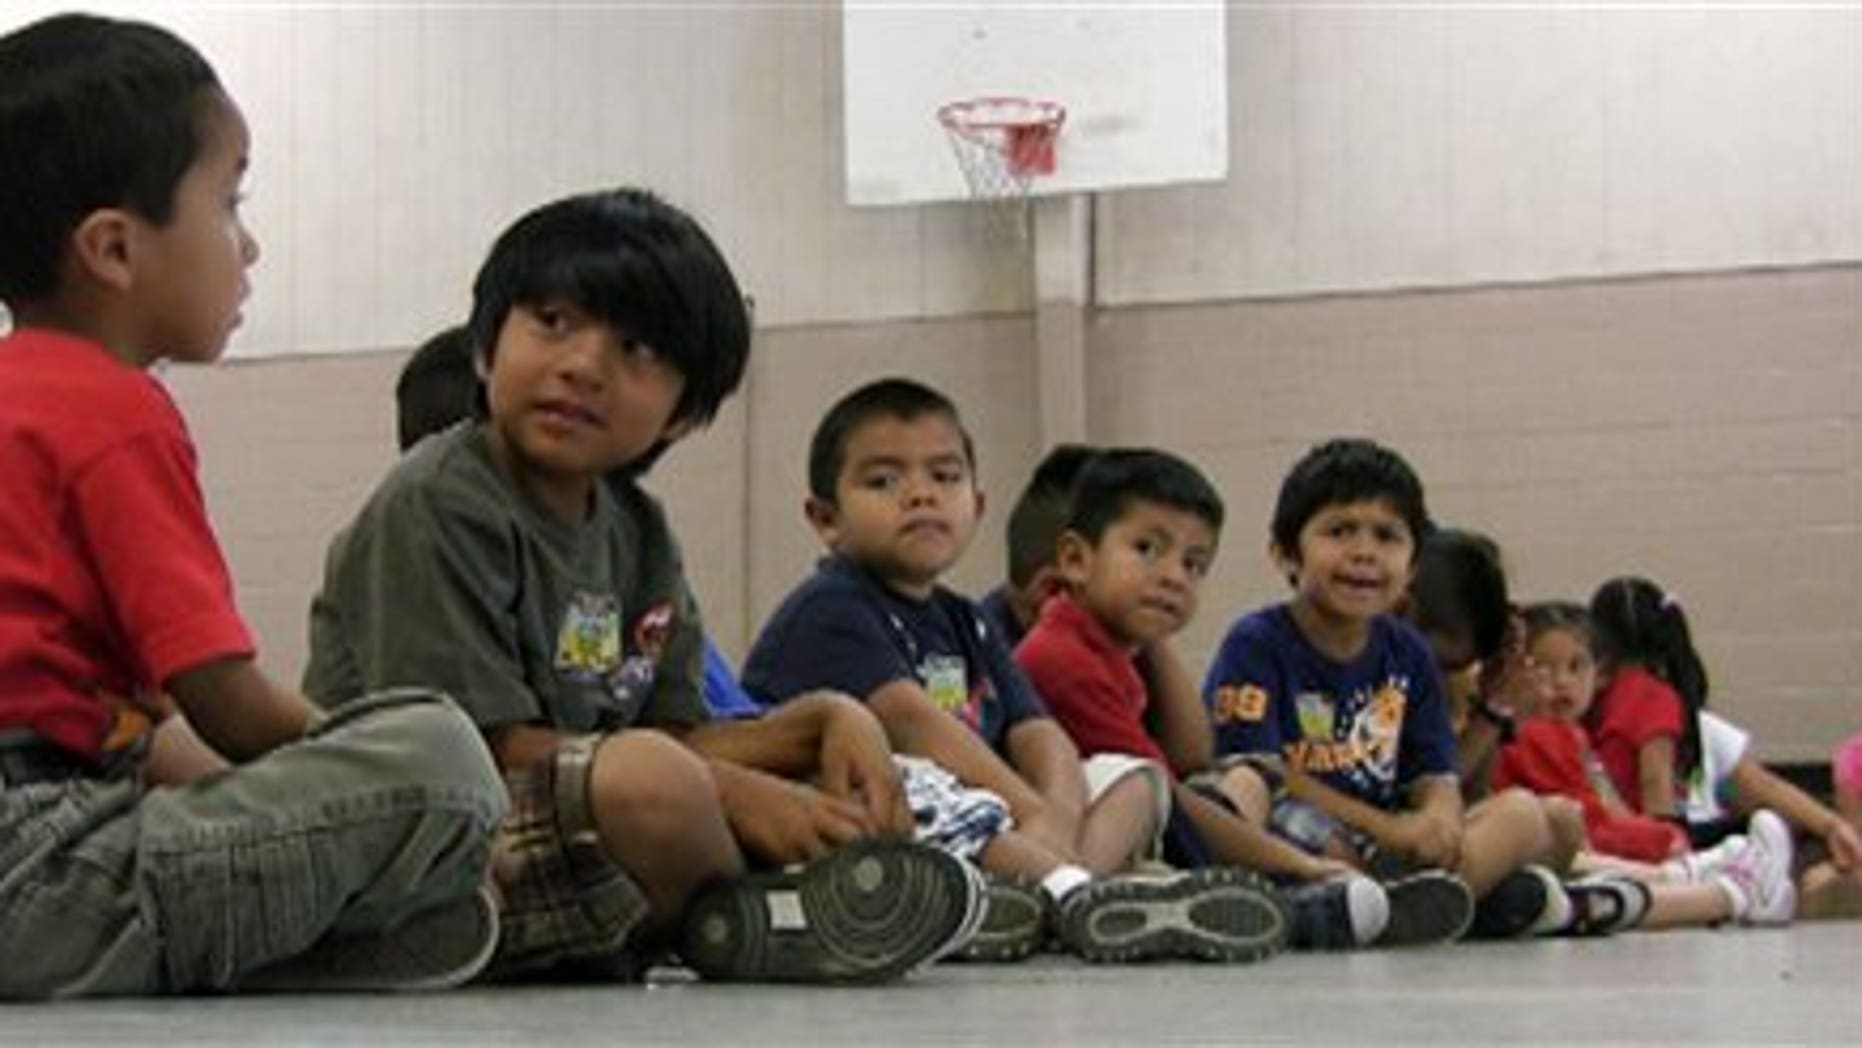 Aug 17: Students sit in the gym at Crossville Elmentary School in Crossville, Ala. In the last week, since Alabama enacted the nation's strictest state-level immigration law, growing numbers of Latino children of migrants have stayed away from school.